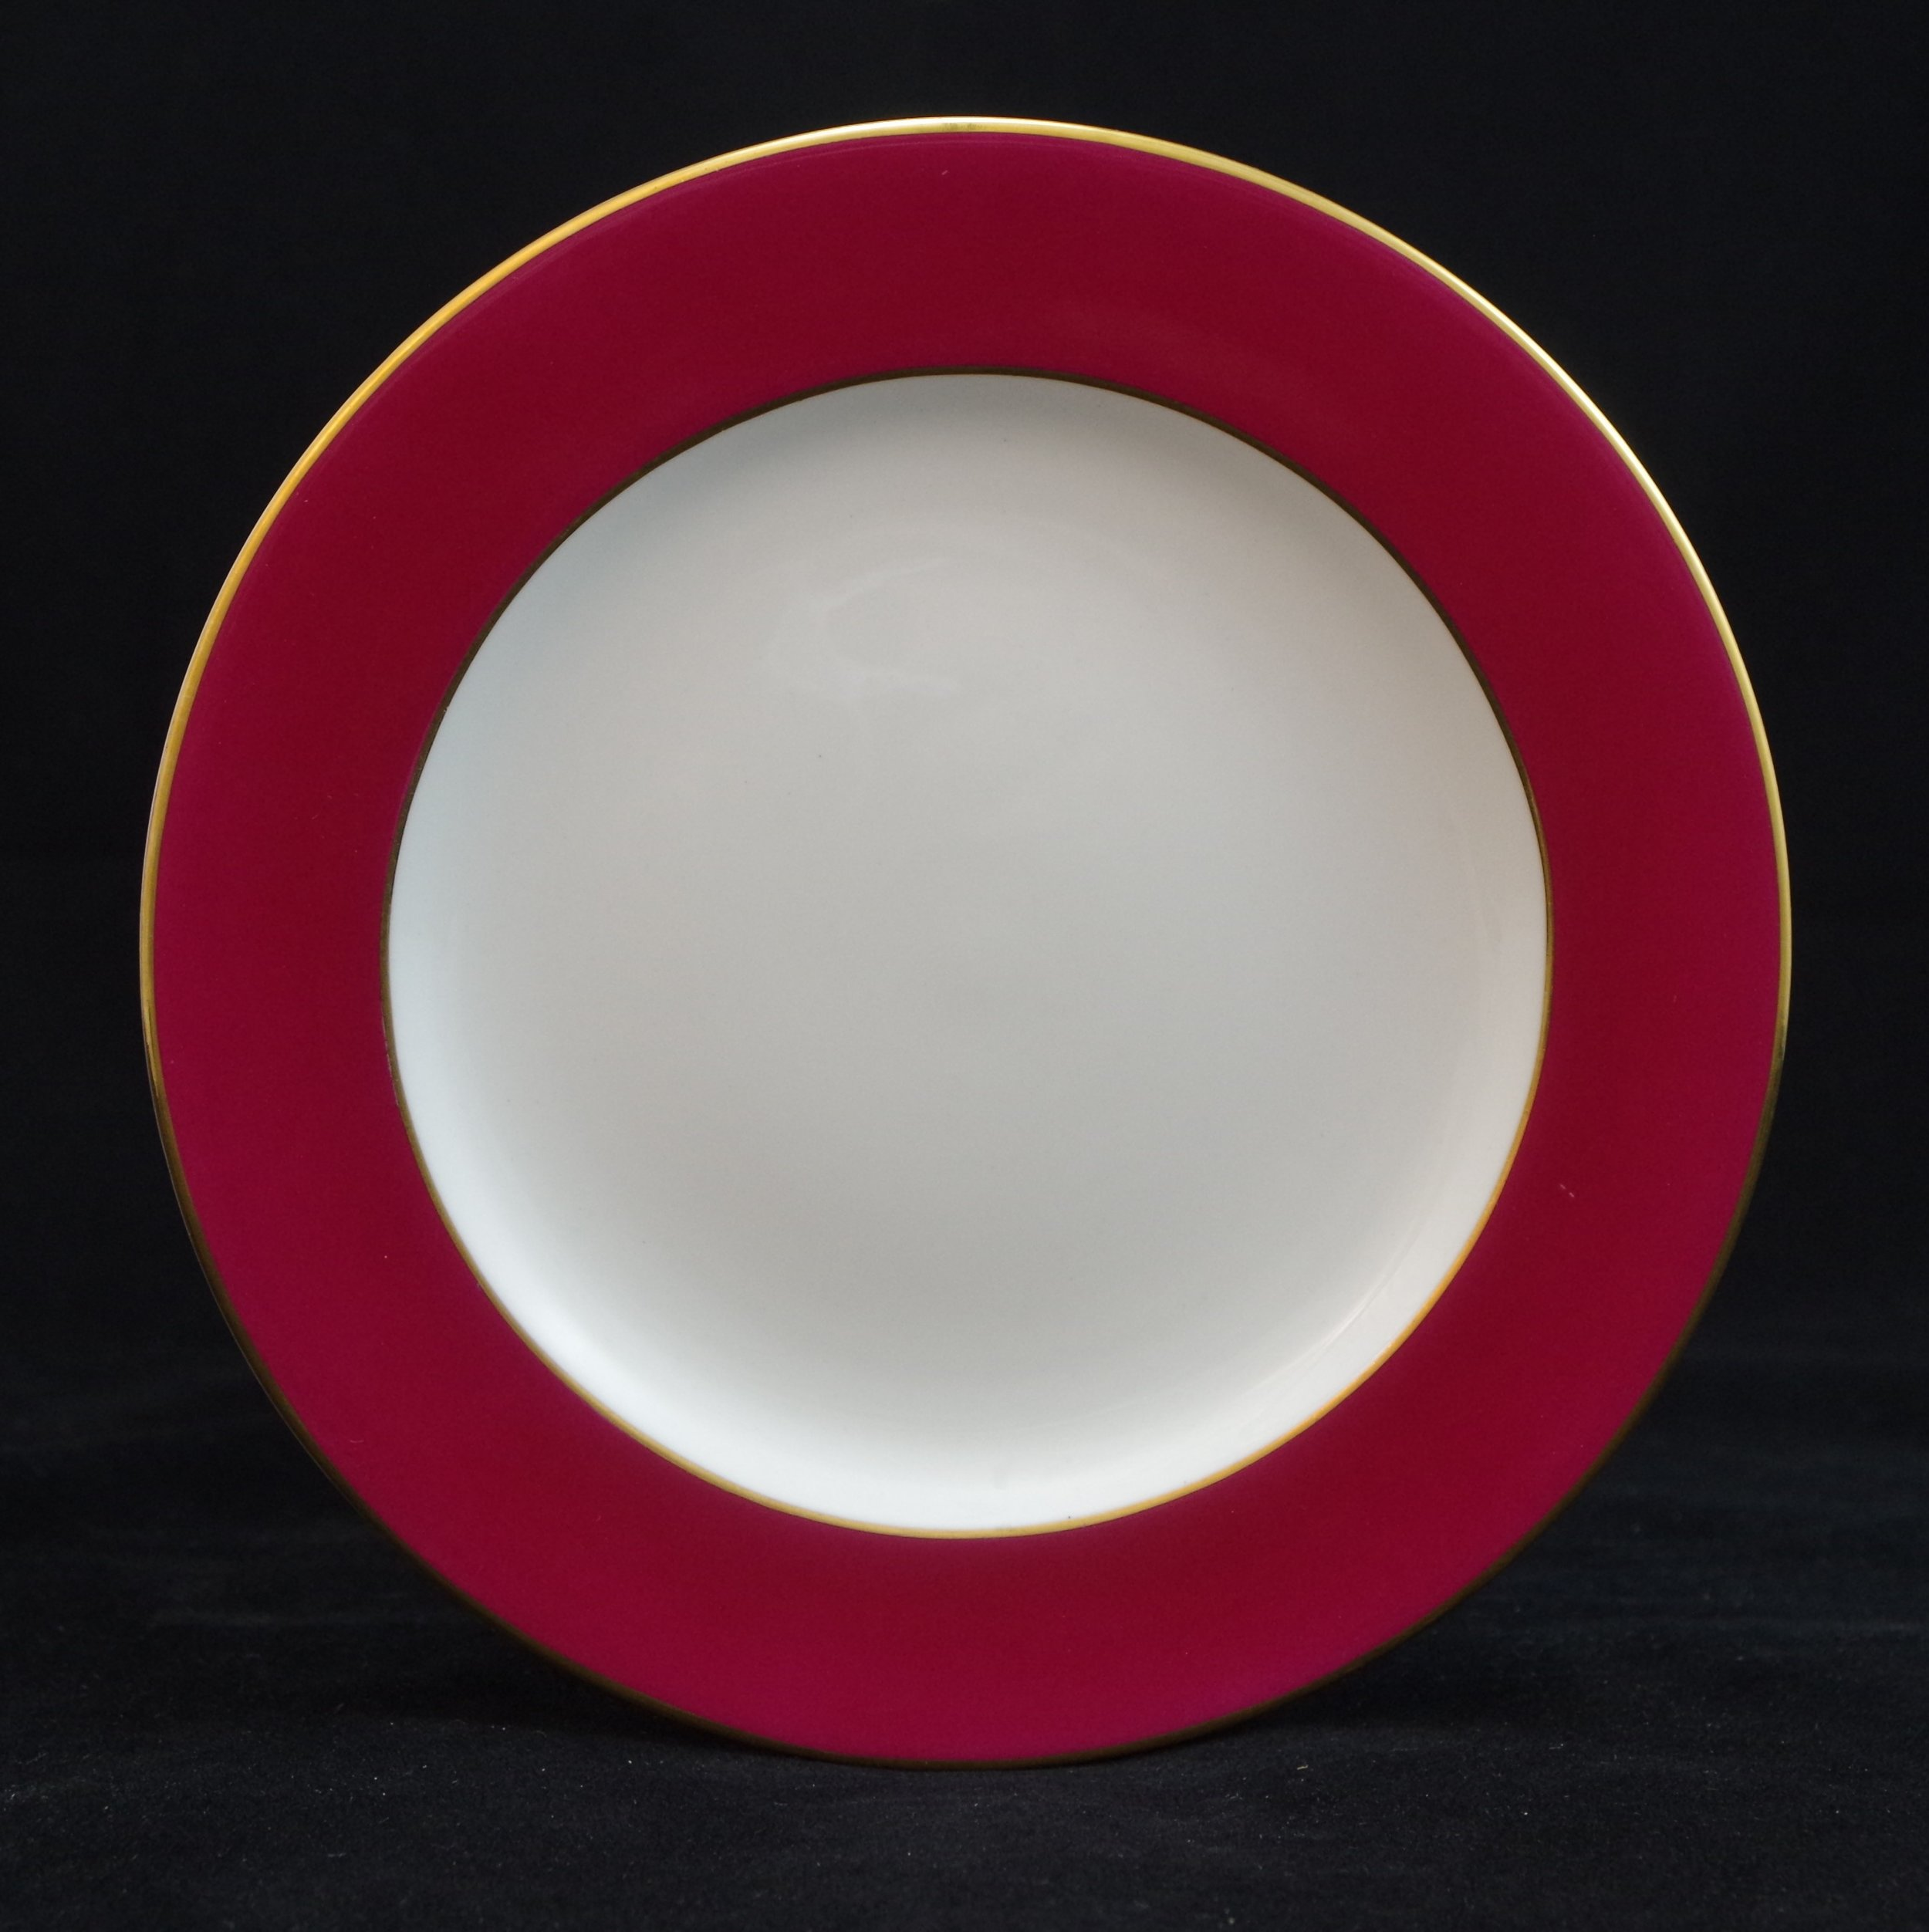 royal-crown-derby-maroon-ground-to-rim-gold-edge-and-centre-line-at-shoulder